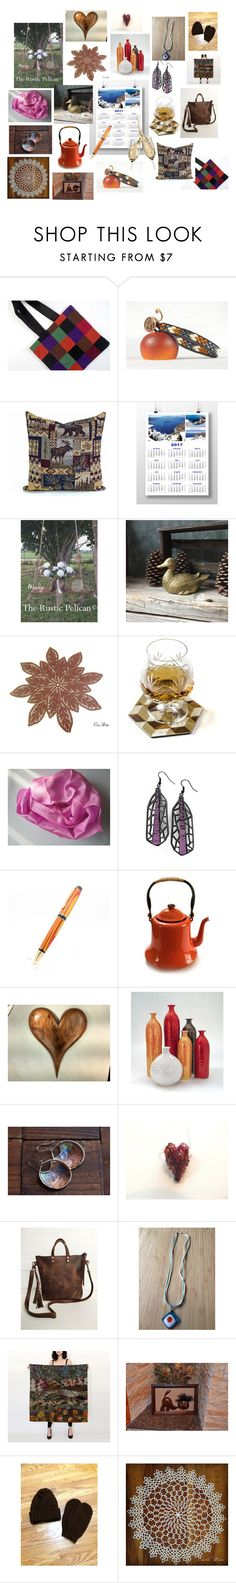 """""""Buon 2017"""" by acasaconmanu ❤ liked on Polyvore"""